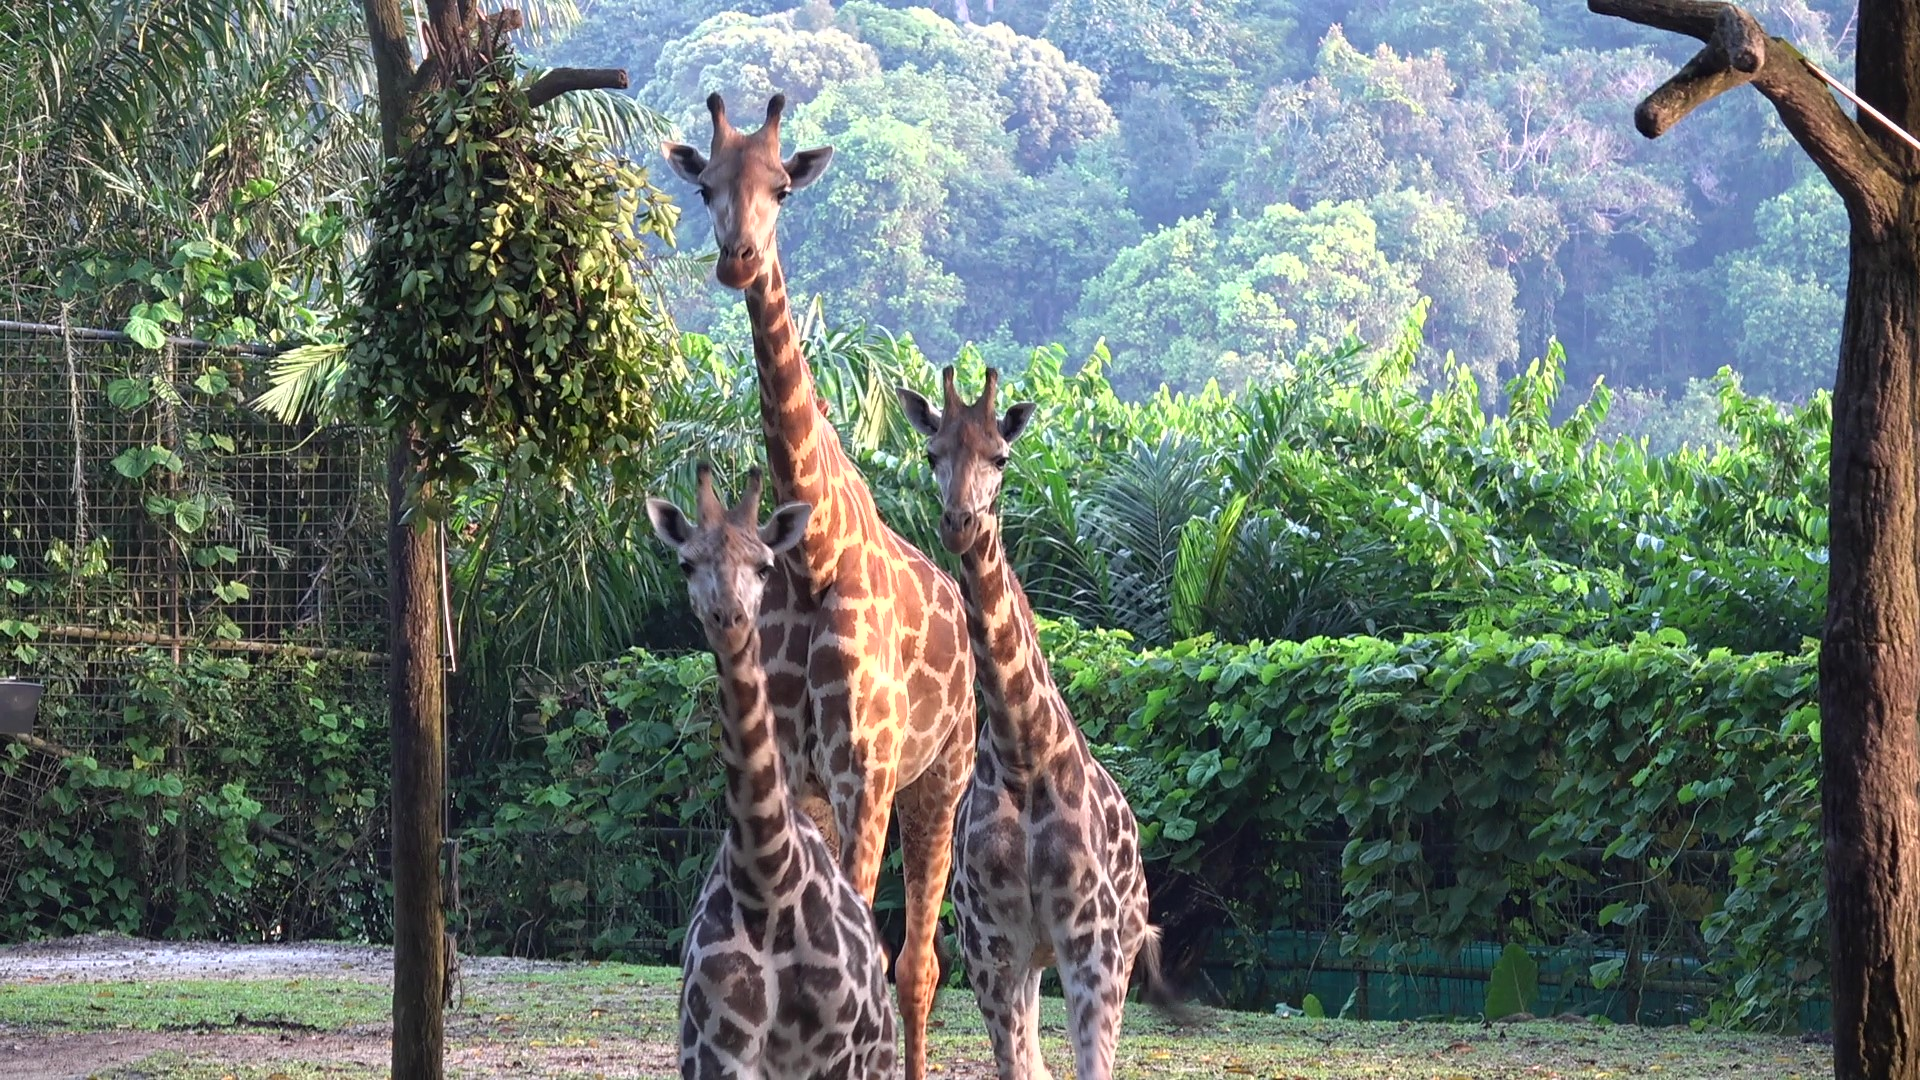 New kids on the block Balaji (leftmost) and Adhil (rightmost) explore Singapore Zoo's giraffe exhibit while a towering Jubilee (middle) keeps a watchful eye over the juvenile brothers. Photo courtesy: Wildlife Reserves Singapore